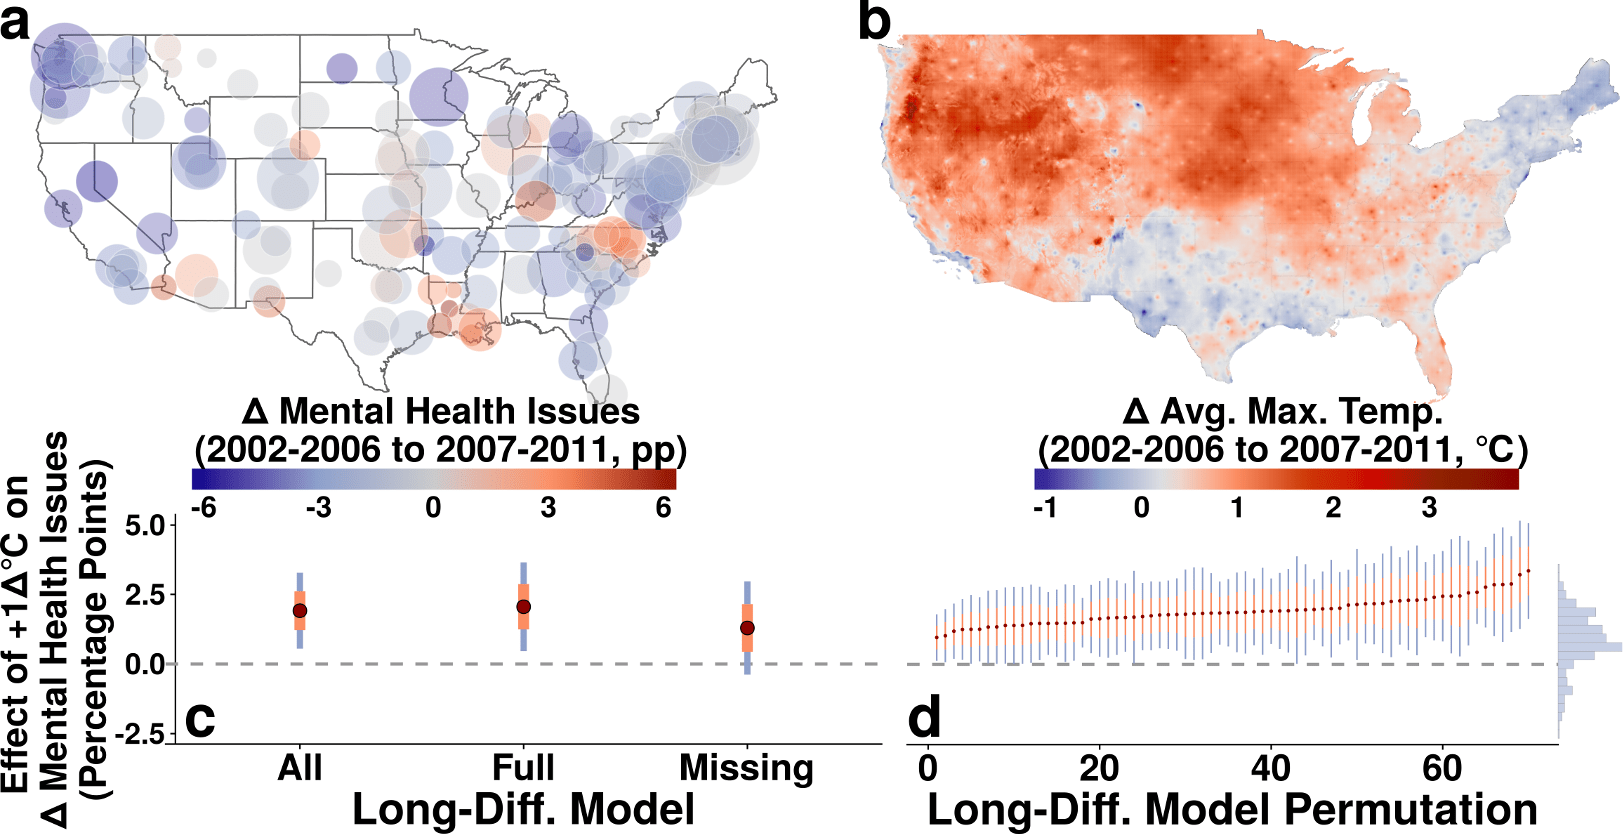 Empirical Evidence Of Mental Health Risks Posed By Climate